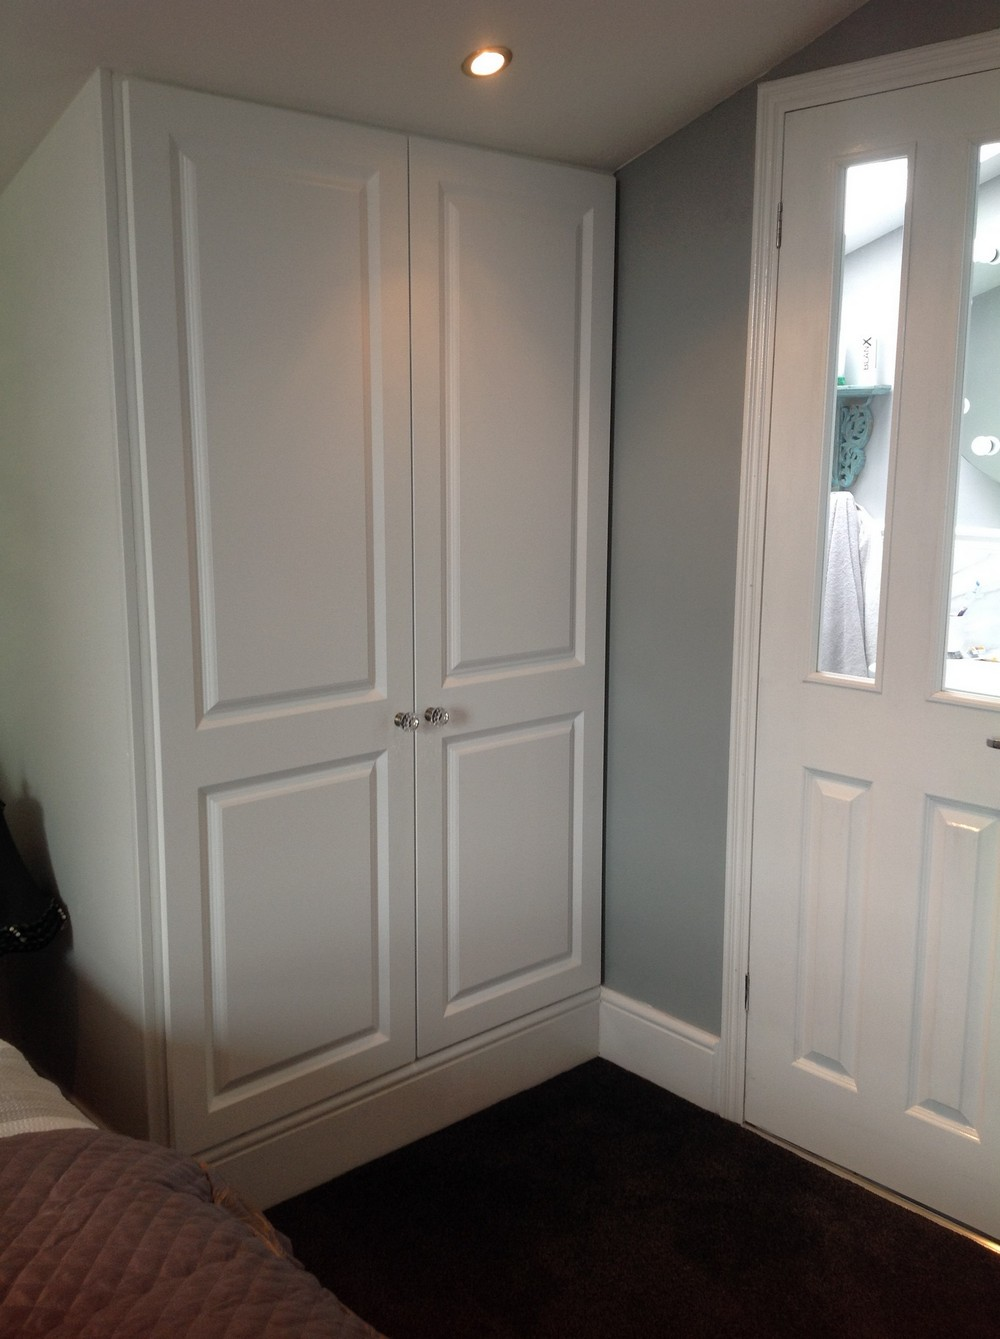 Le Meilleur Wardrobe Doors Replacement Wardrobe Doors Fitted Ce Mois Ci